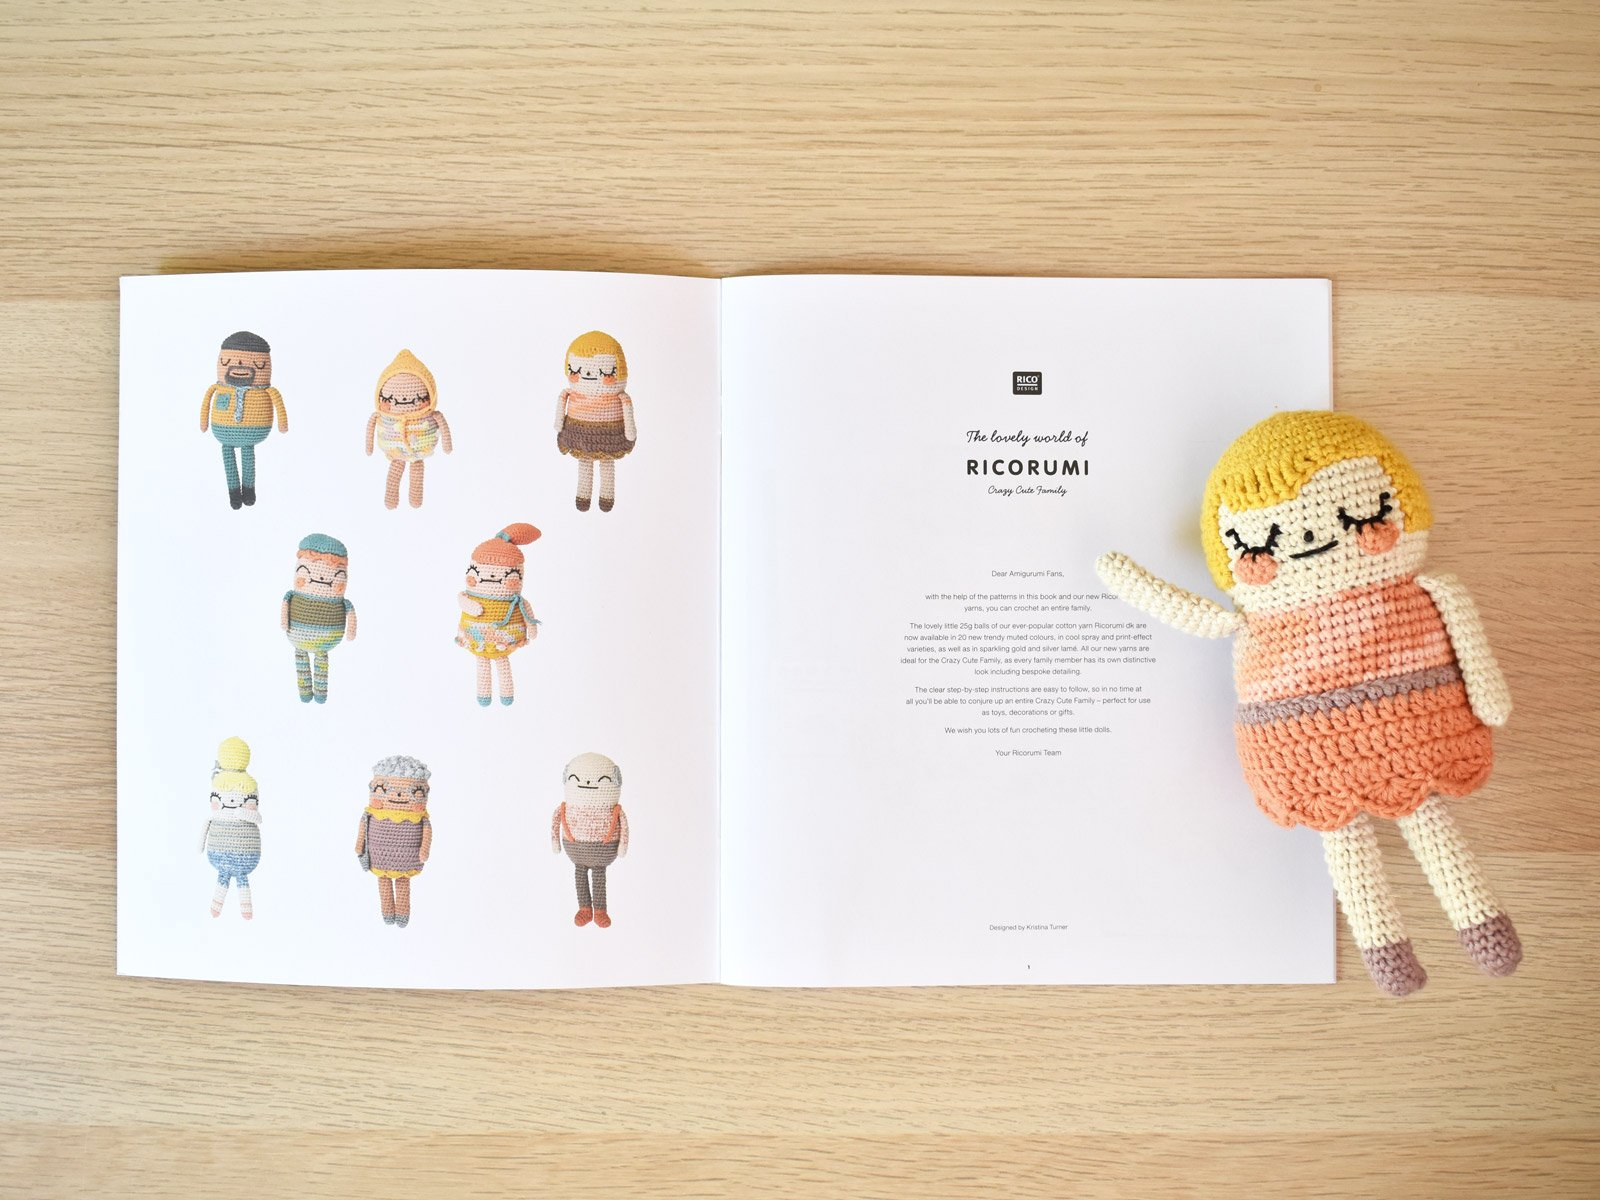 Crochet mom amigurumi doll lays on top of the pattern booklet on the first page.